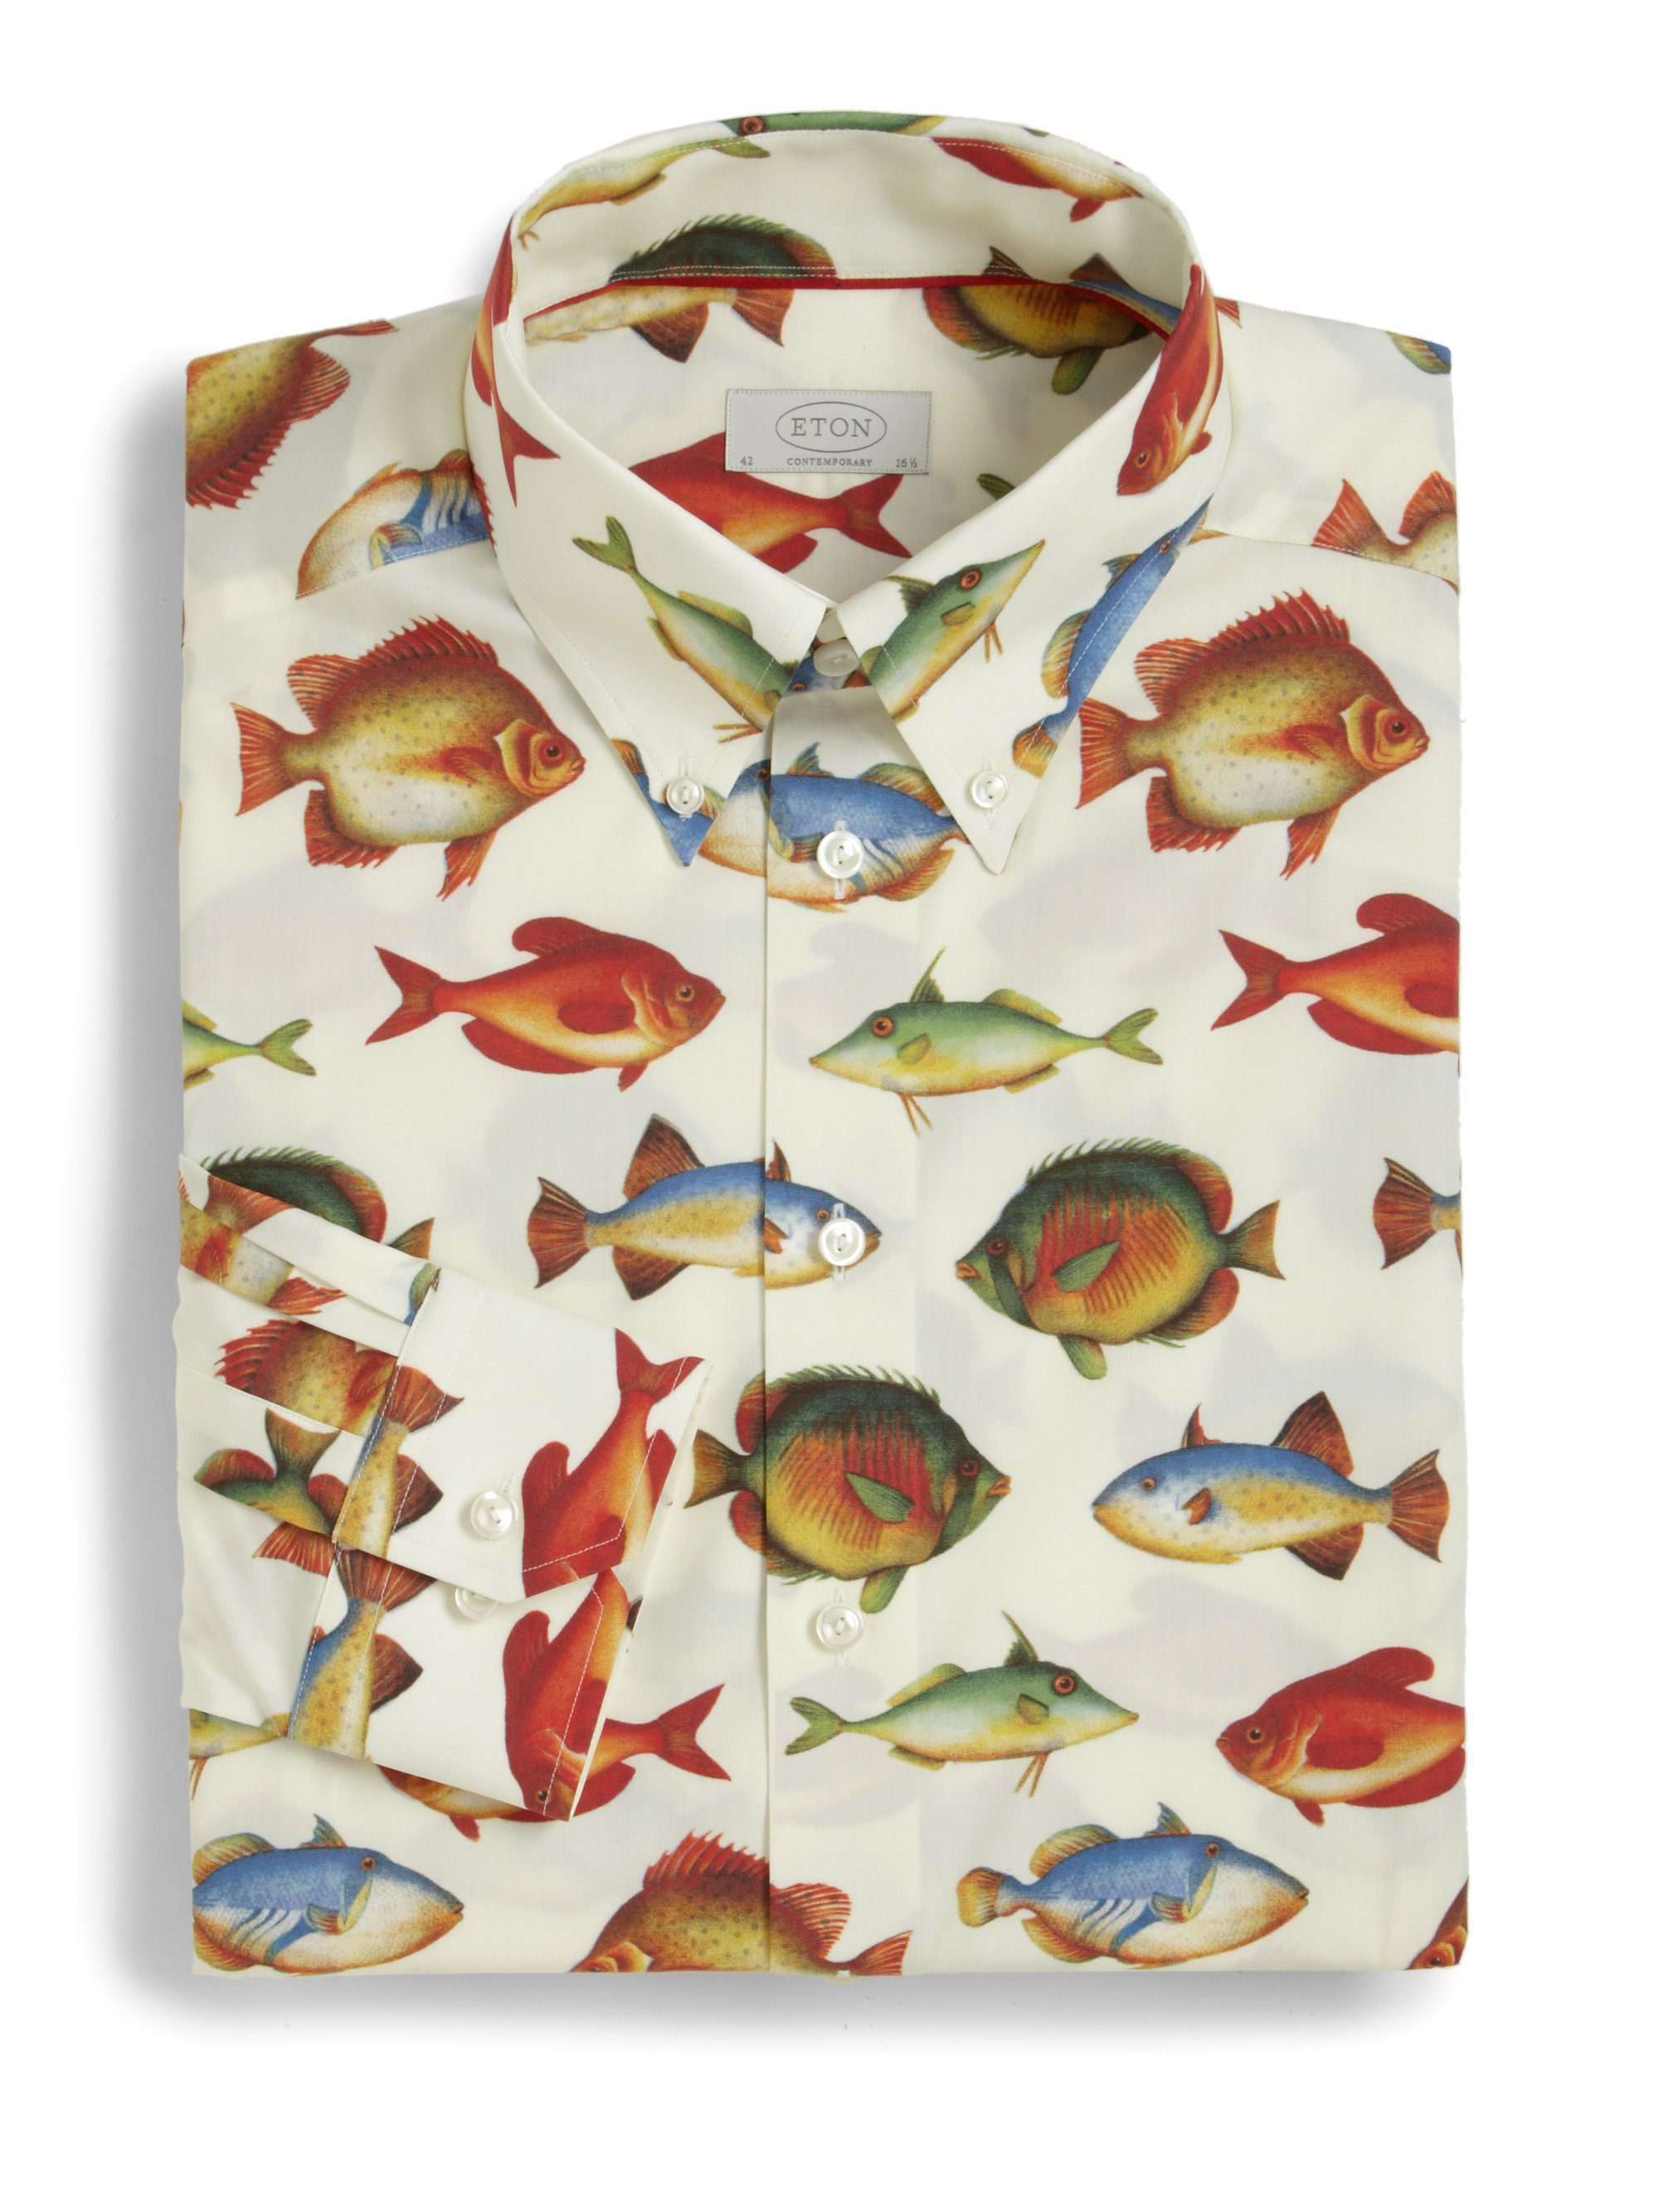 Eton of sweden contemporaryfit fish print dress shirt in for Fish print dress